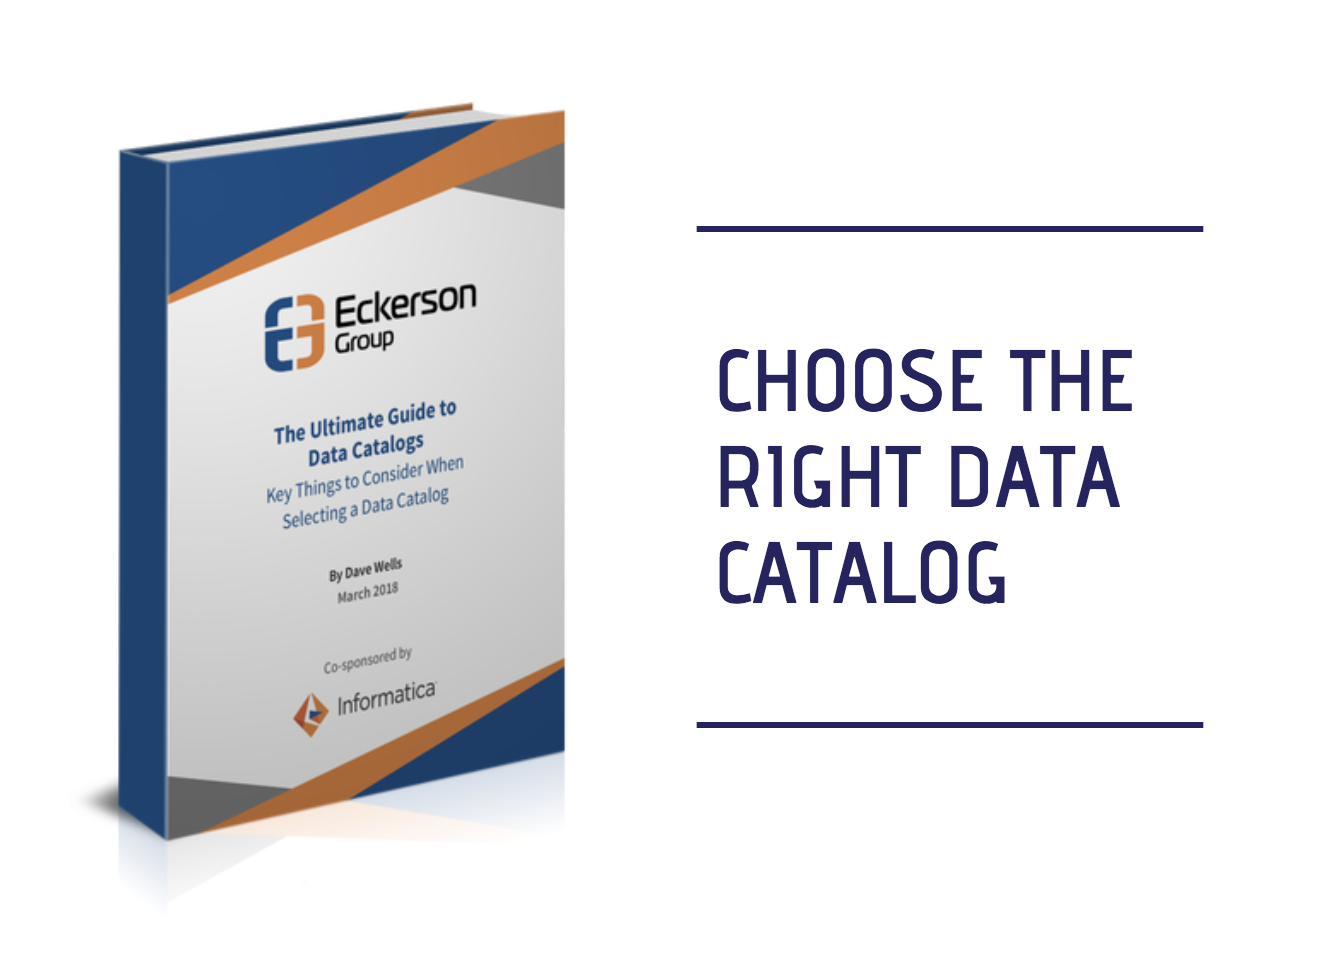 The Ultimate Guide to Data Catalogs